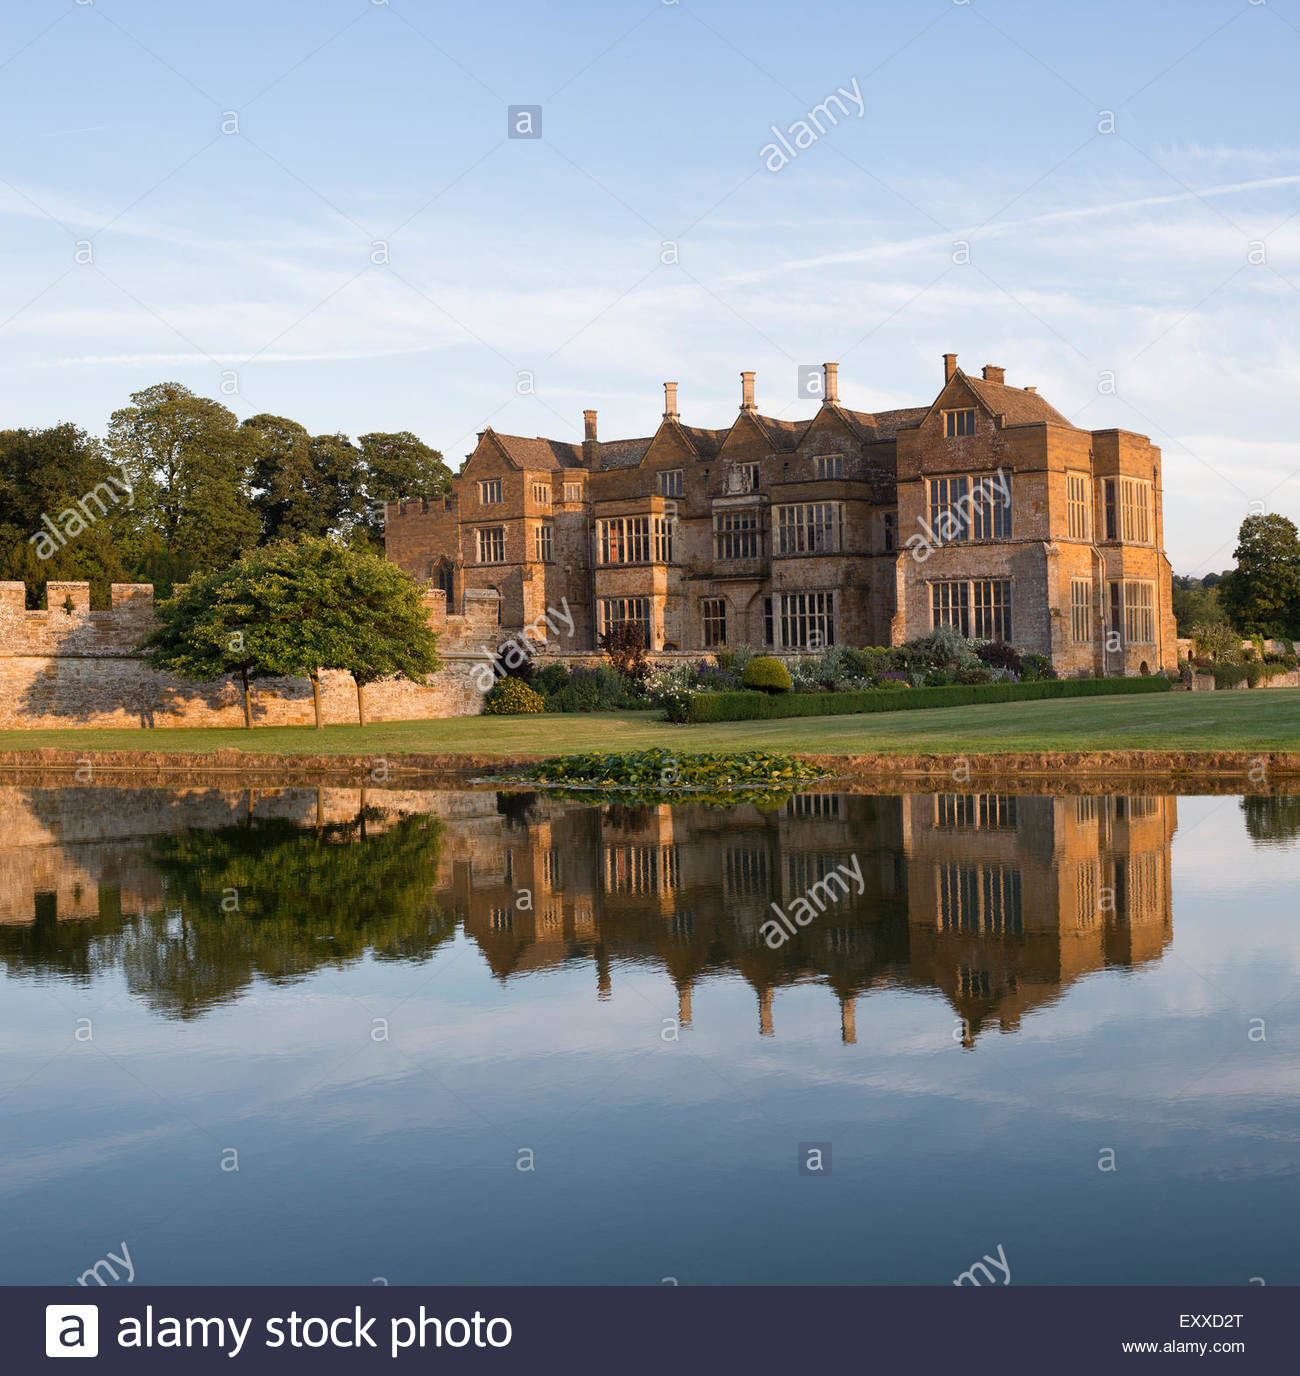 Broughton castle in the evening summer sunlight. Near Banbury, Oxfordshire, England - Stock Image